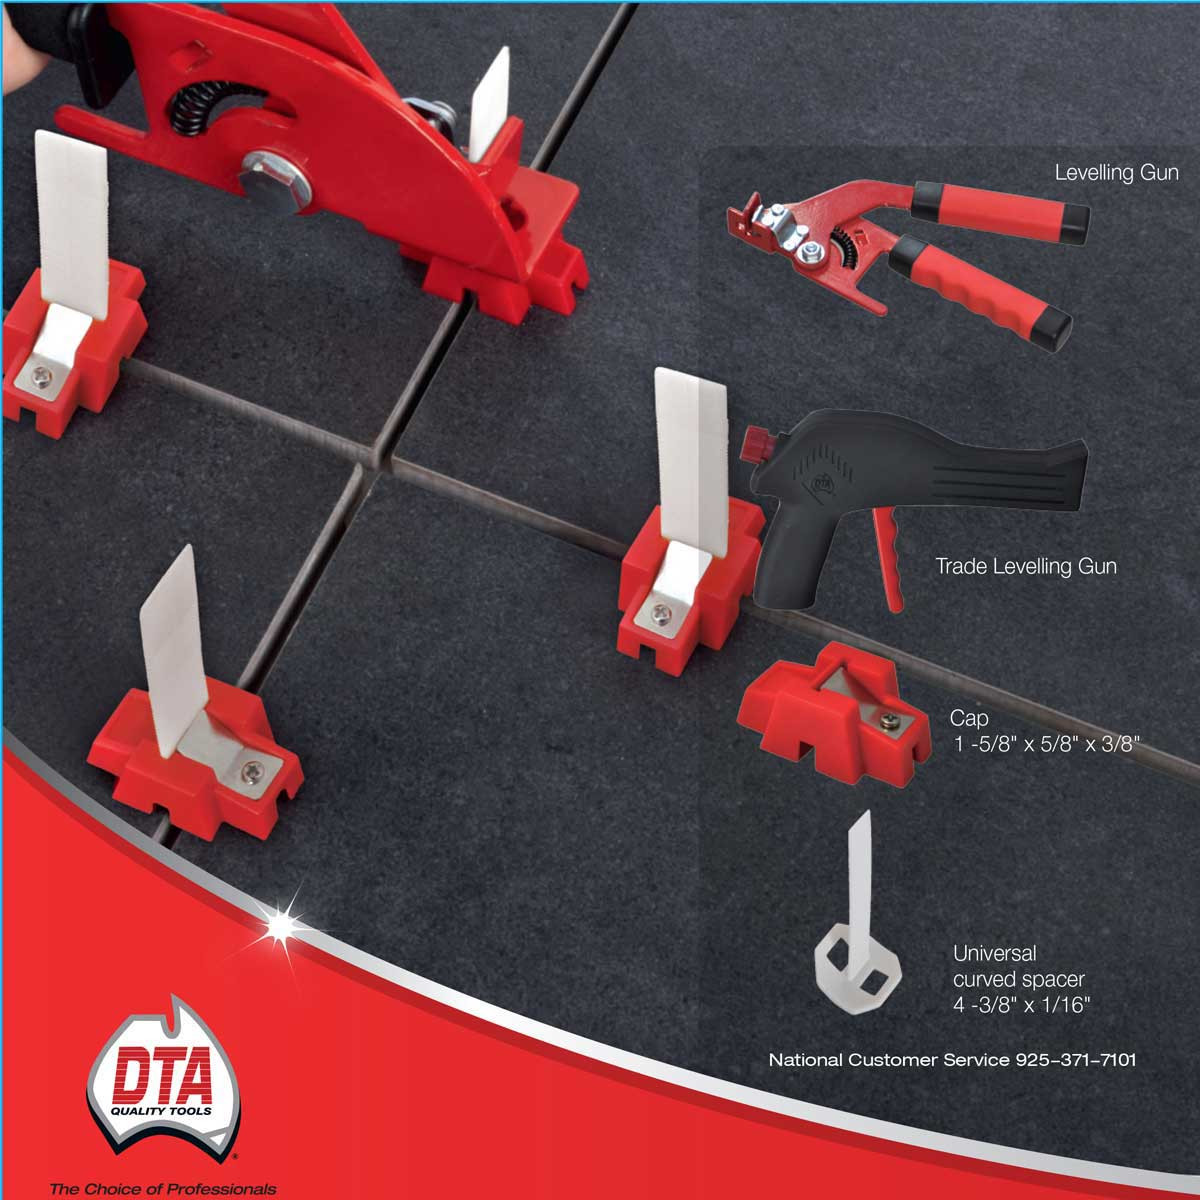 dta universal leveling system layout with strap and cap